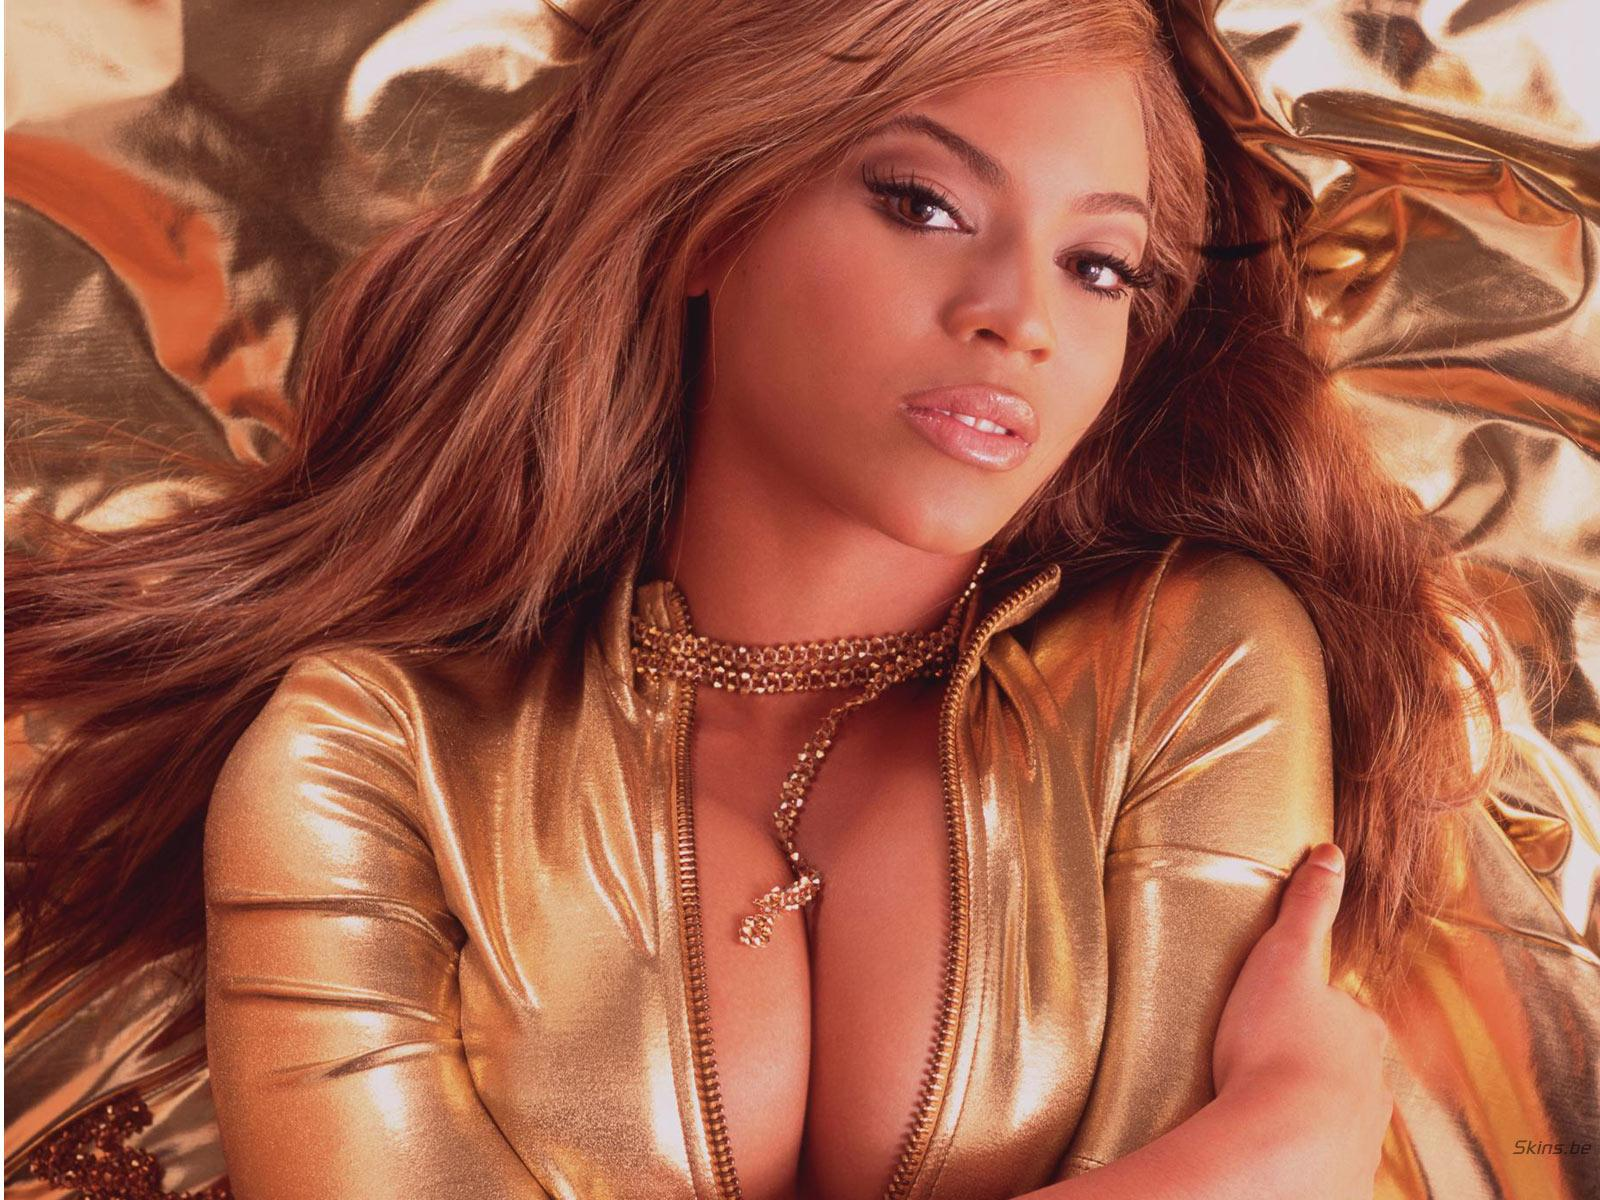 beyonce big boobs cleavage golden suit messy brown hair Beyoncé Sexy